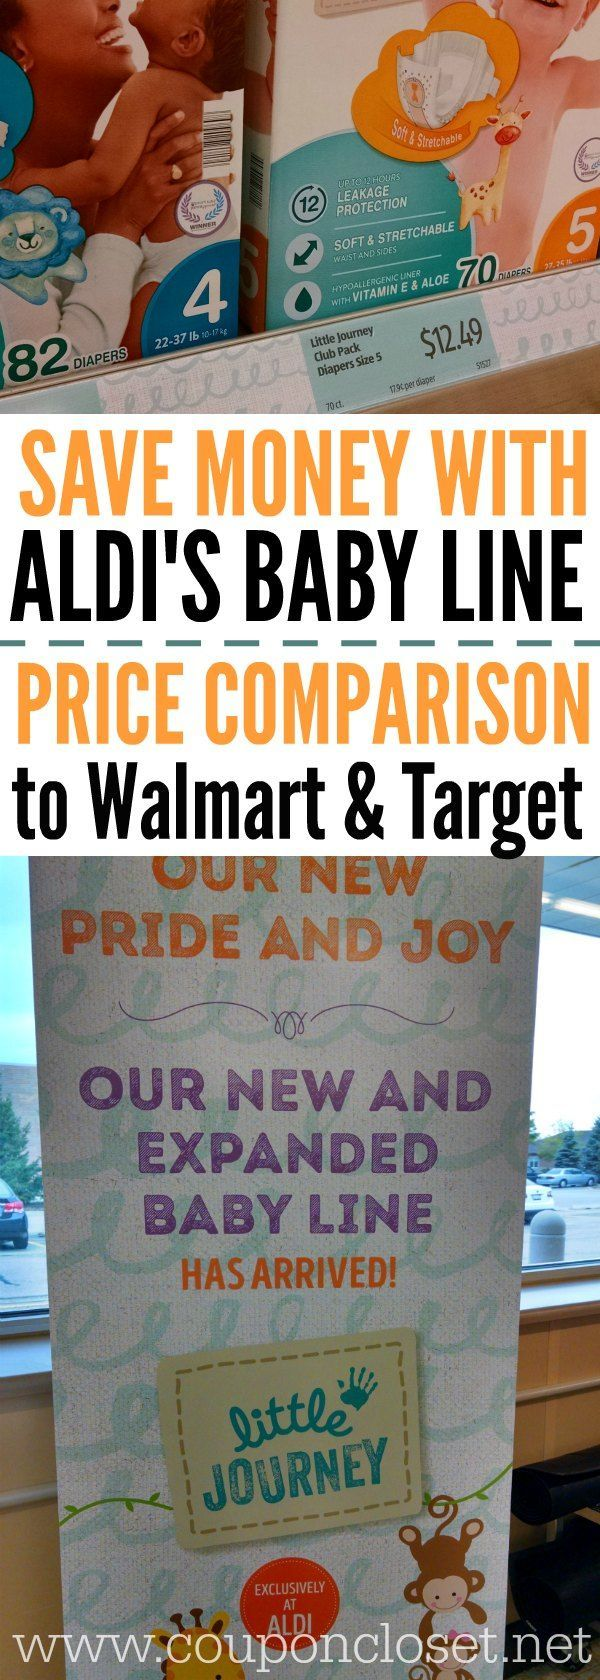 Here are tips to save money on baby products at Aldi grocery store. How to save money on Aldi brand formula, Aldi brand diapers, Aldi baby formula and more!